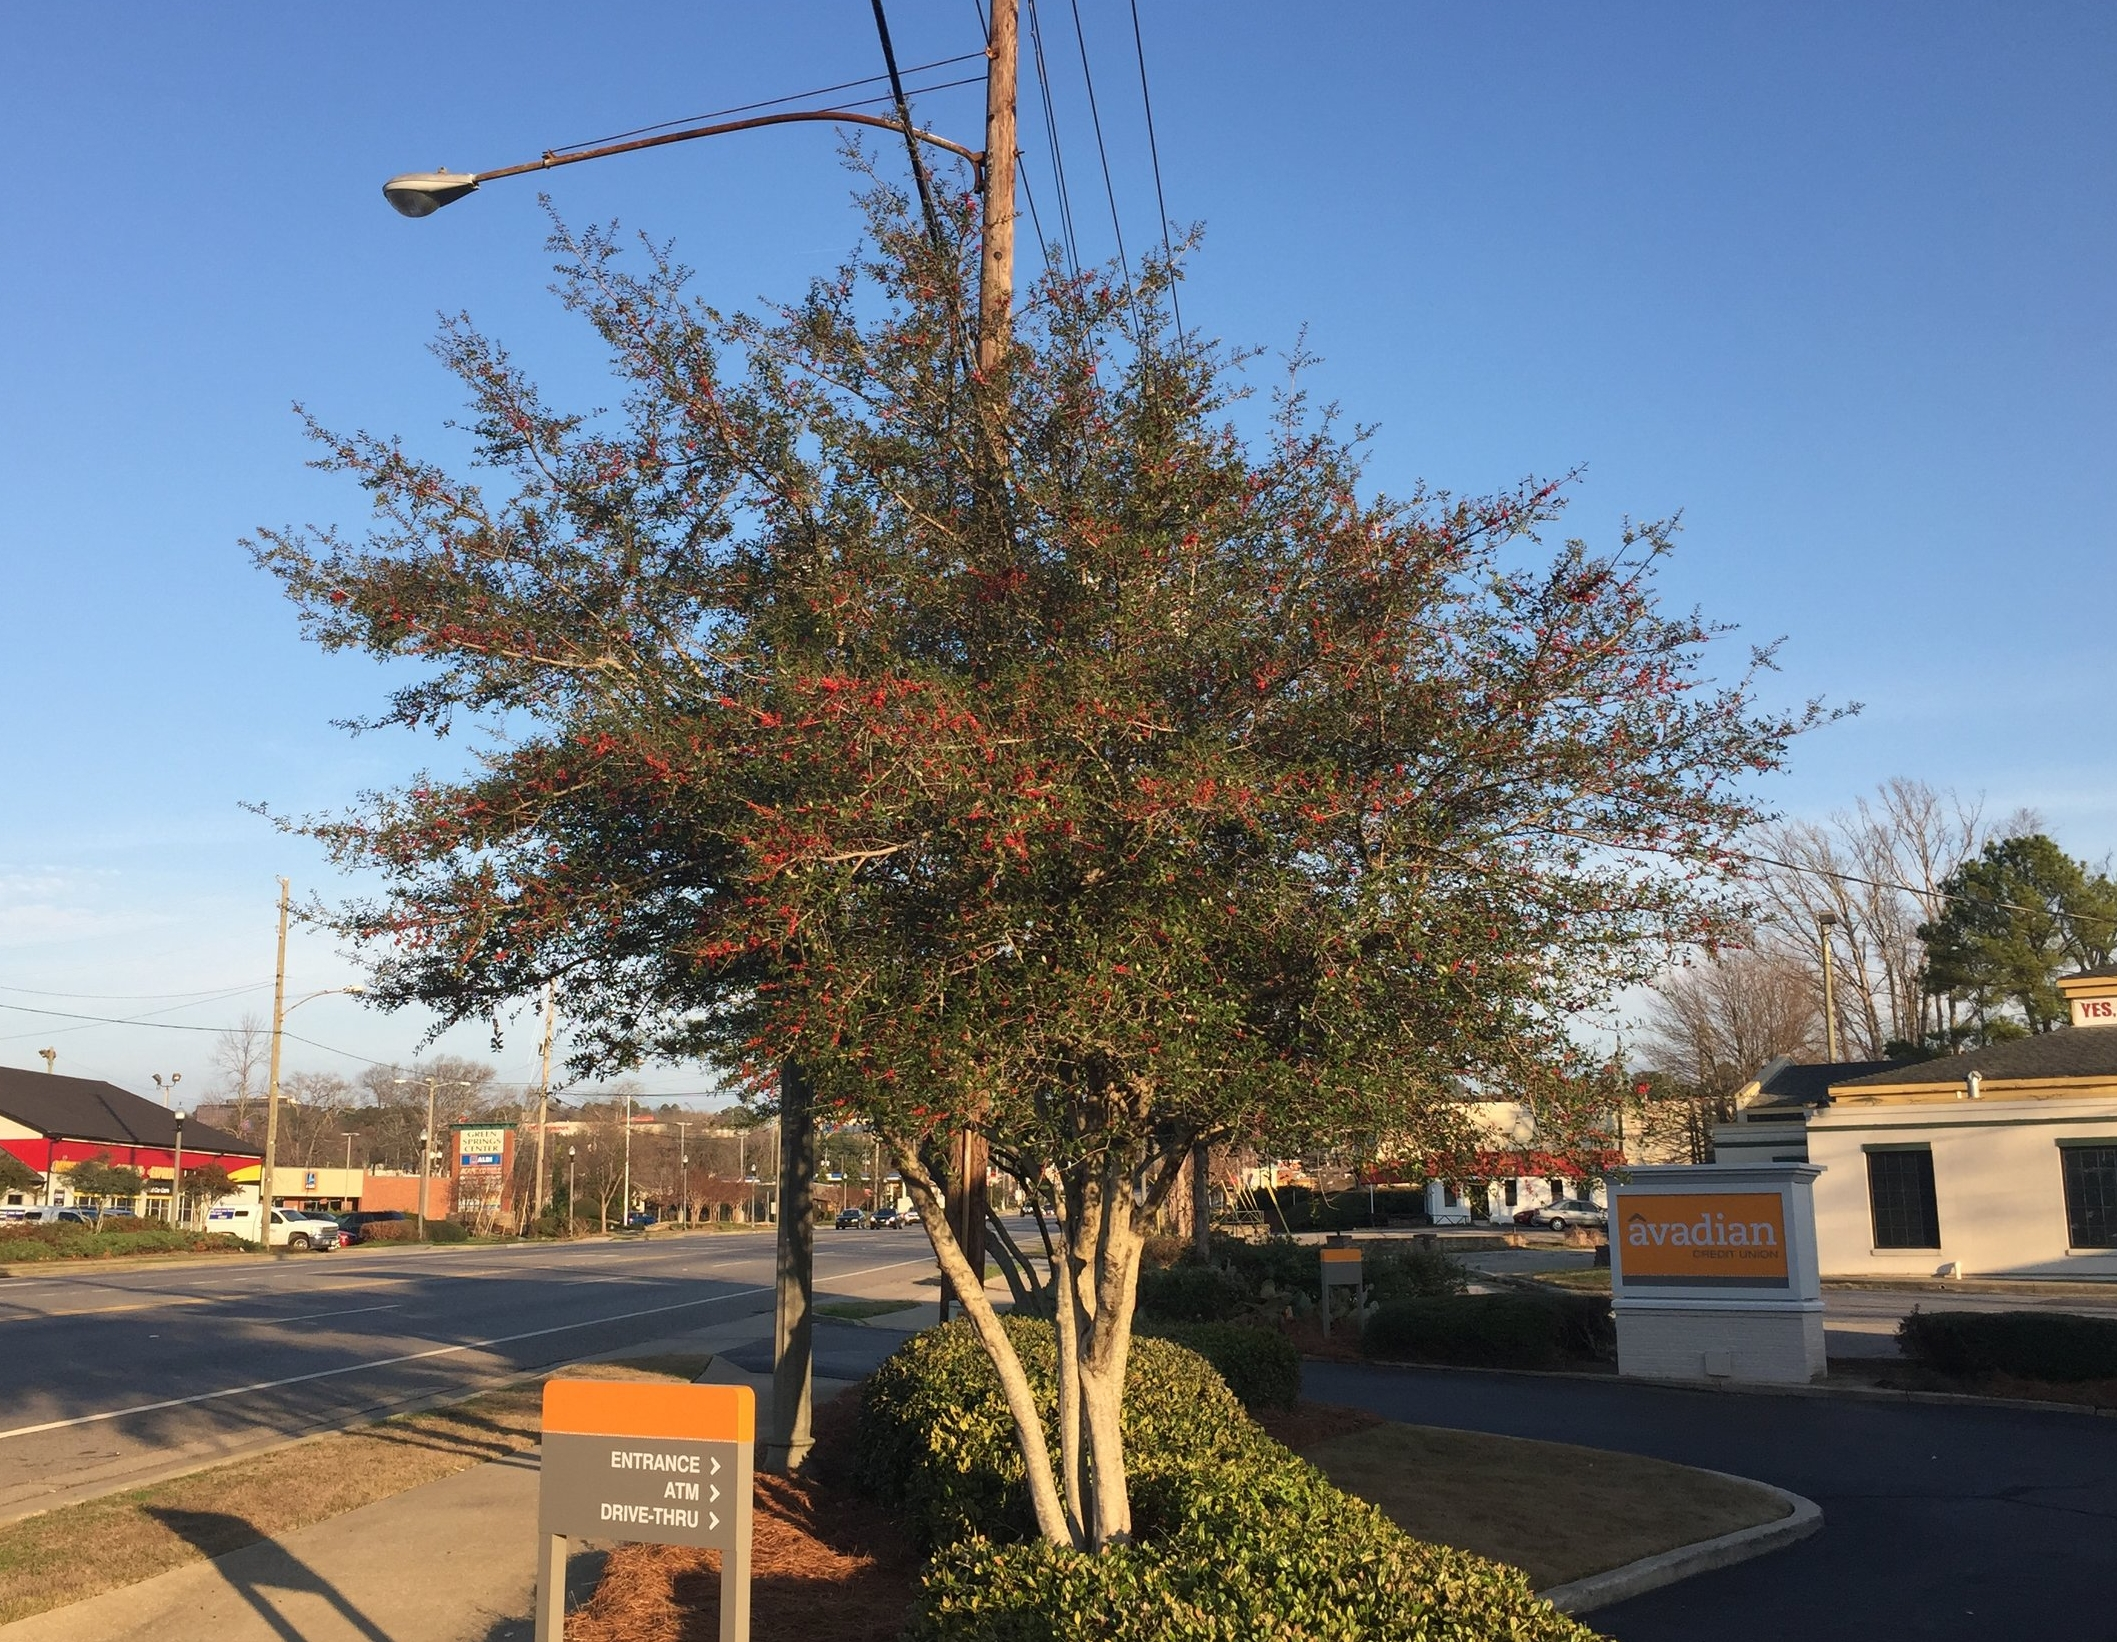 The multi-trunked, tree form of yaupon is excellent in powerline easements.